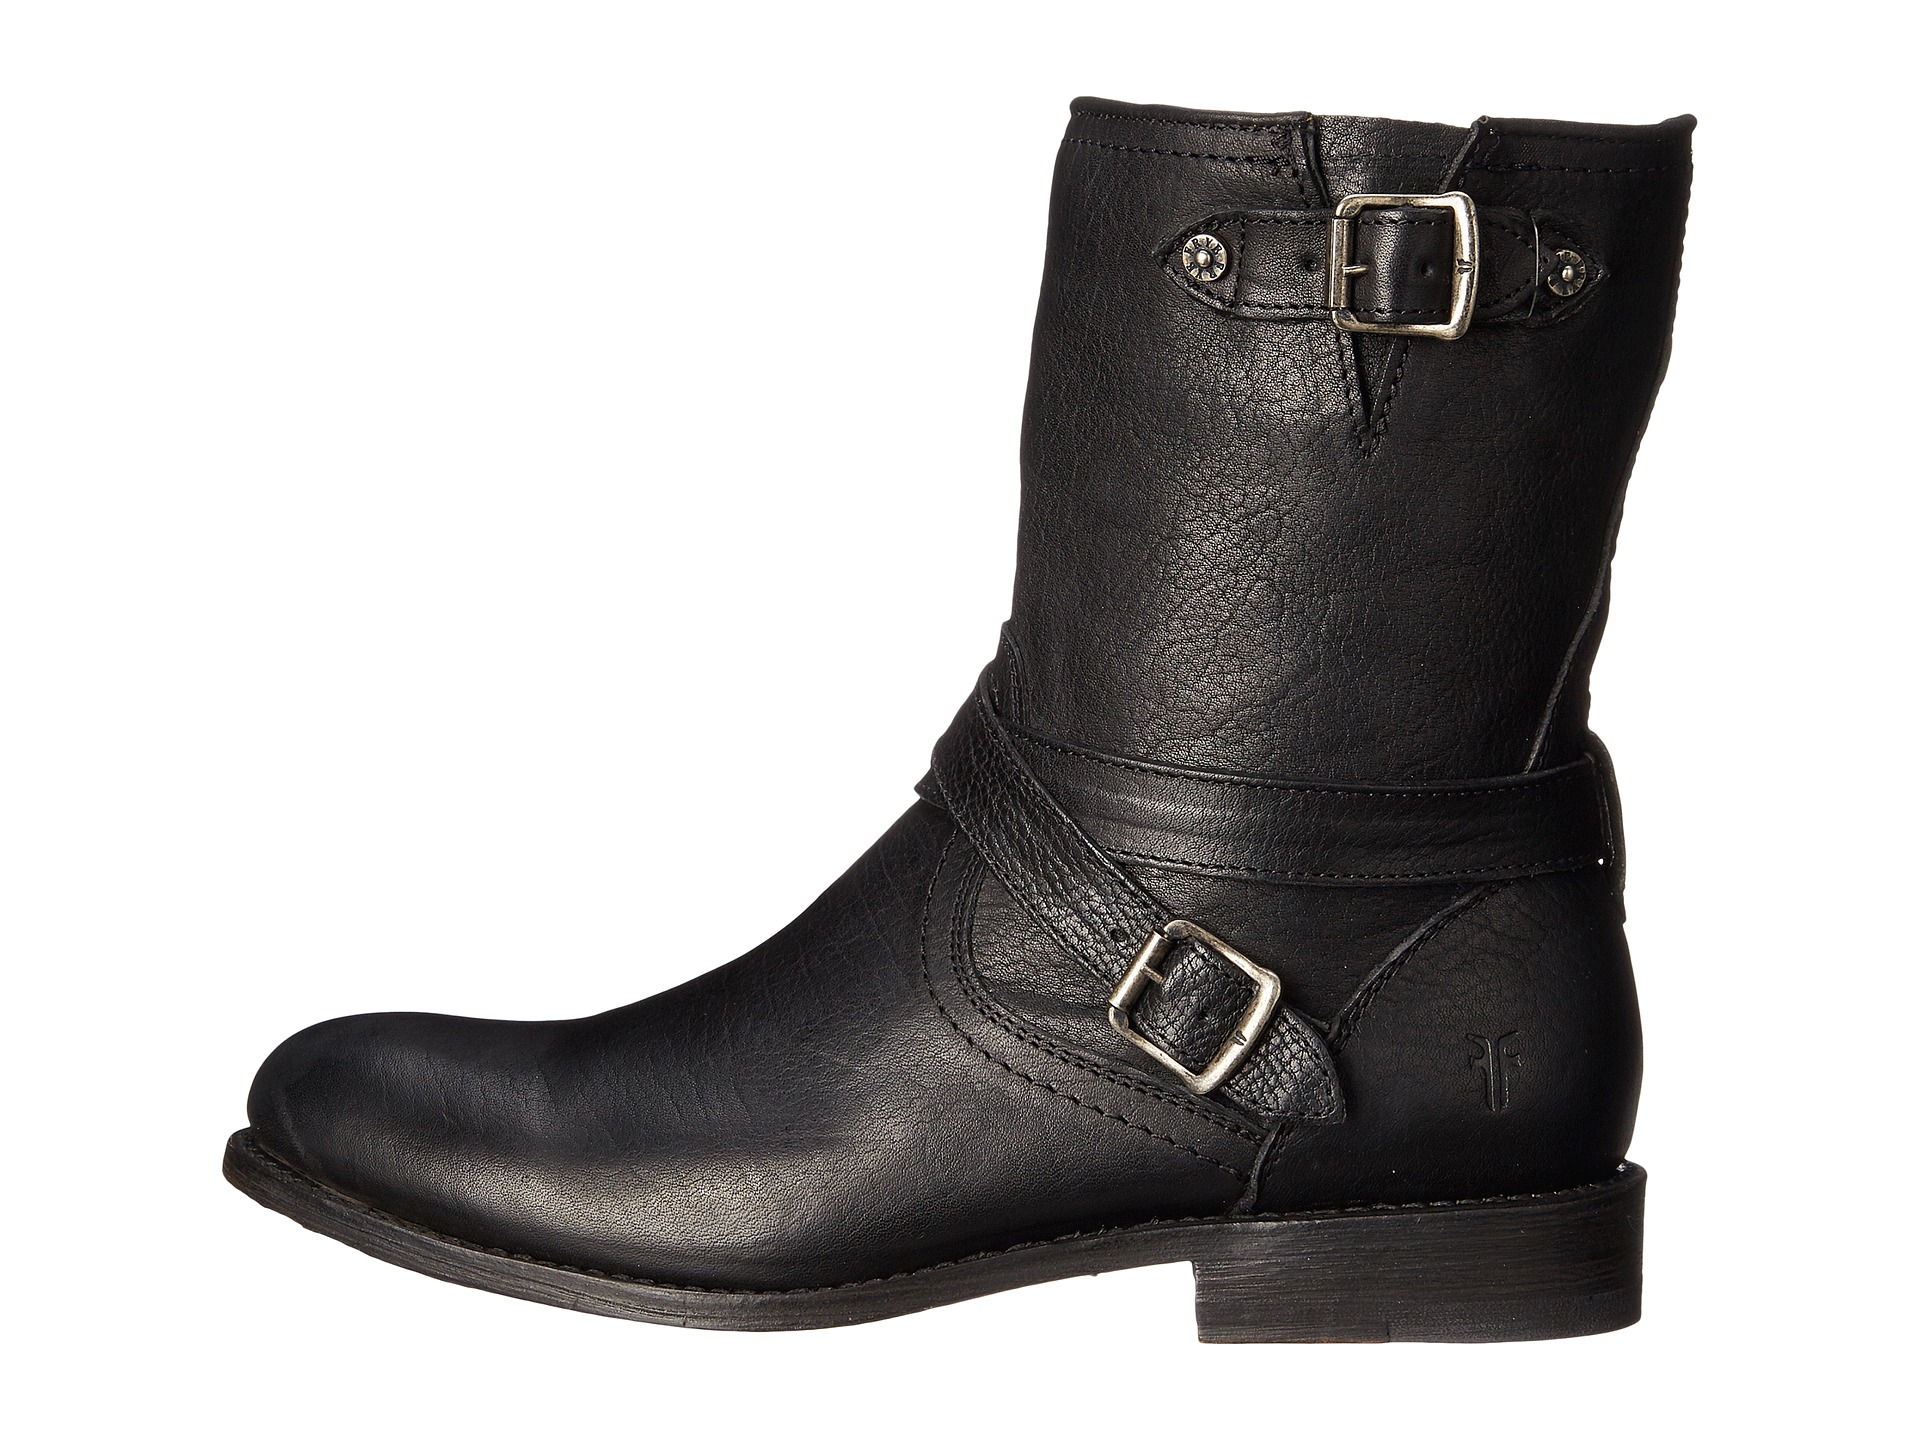 H And M Boots Men Black White Heart With Water Drop